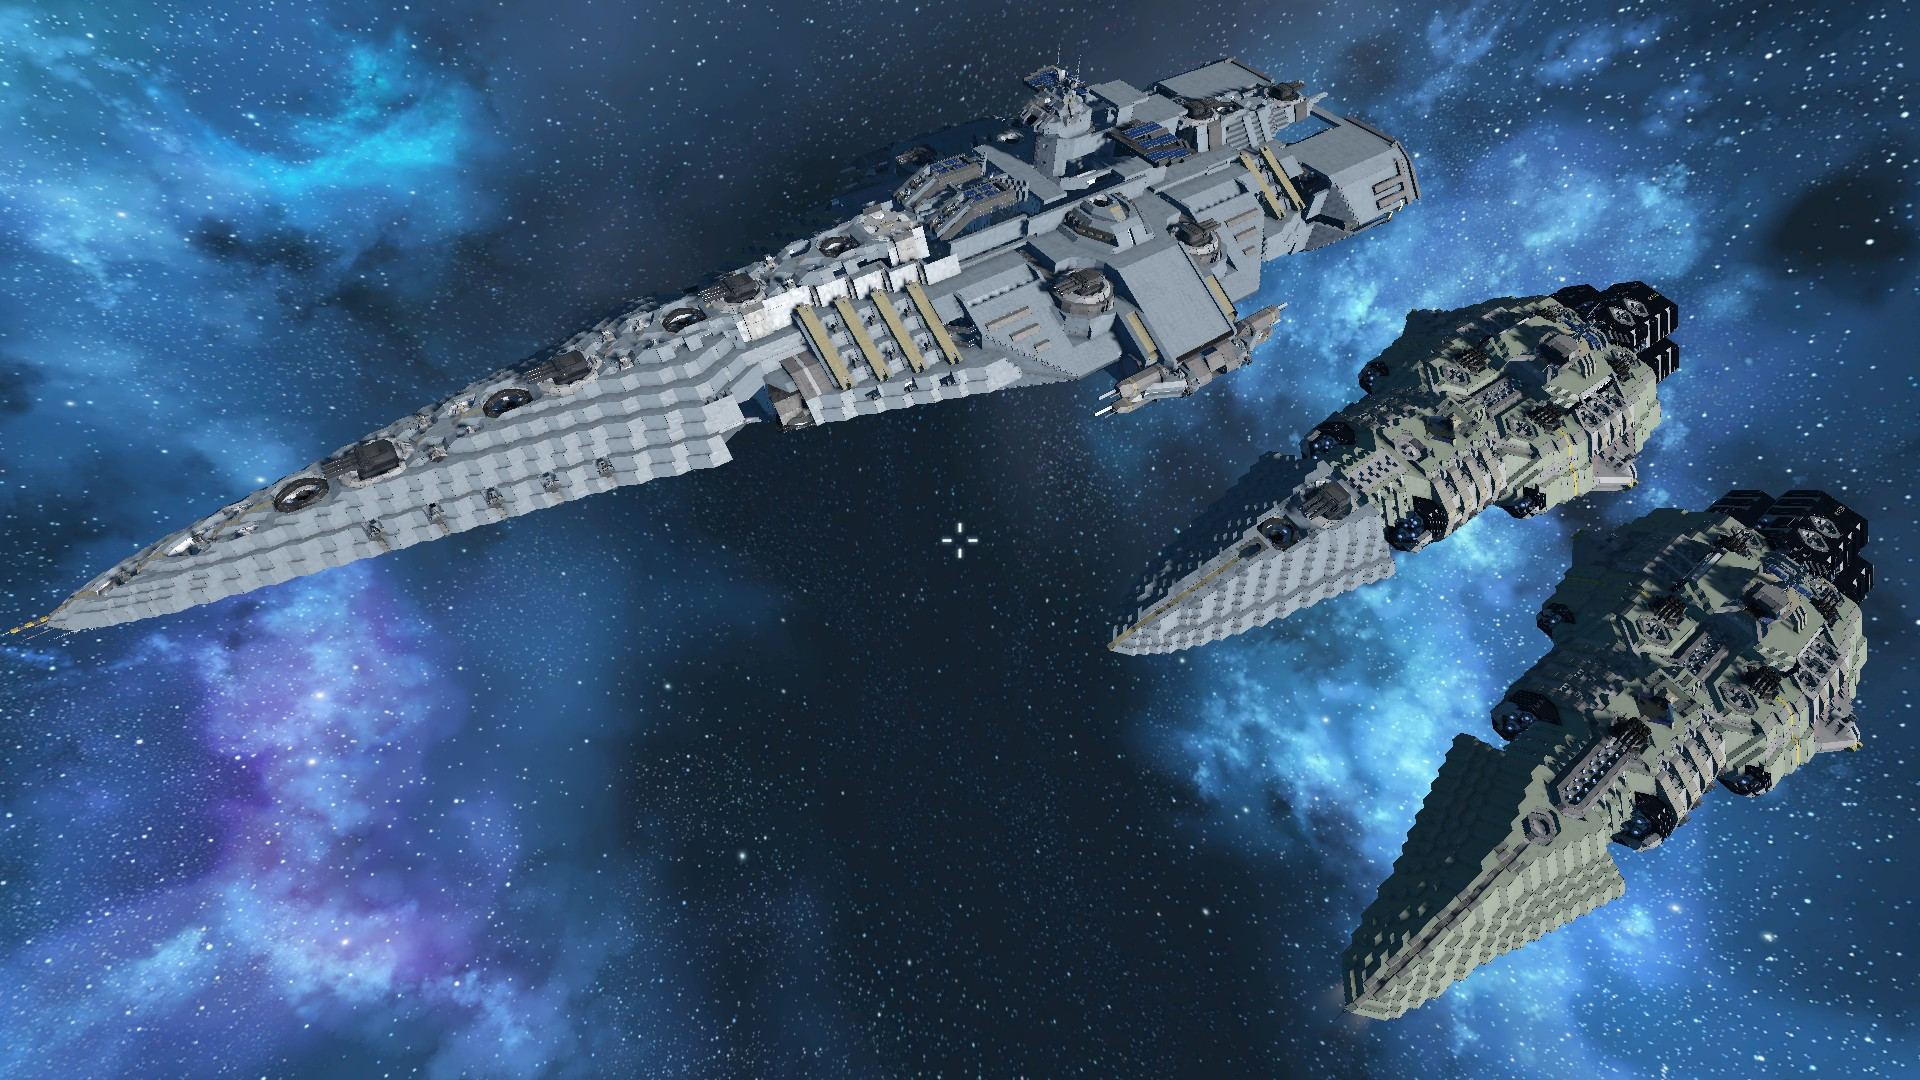 How Does One Go About Building Big Ships Keen Software House Forums